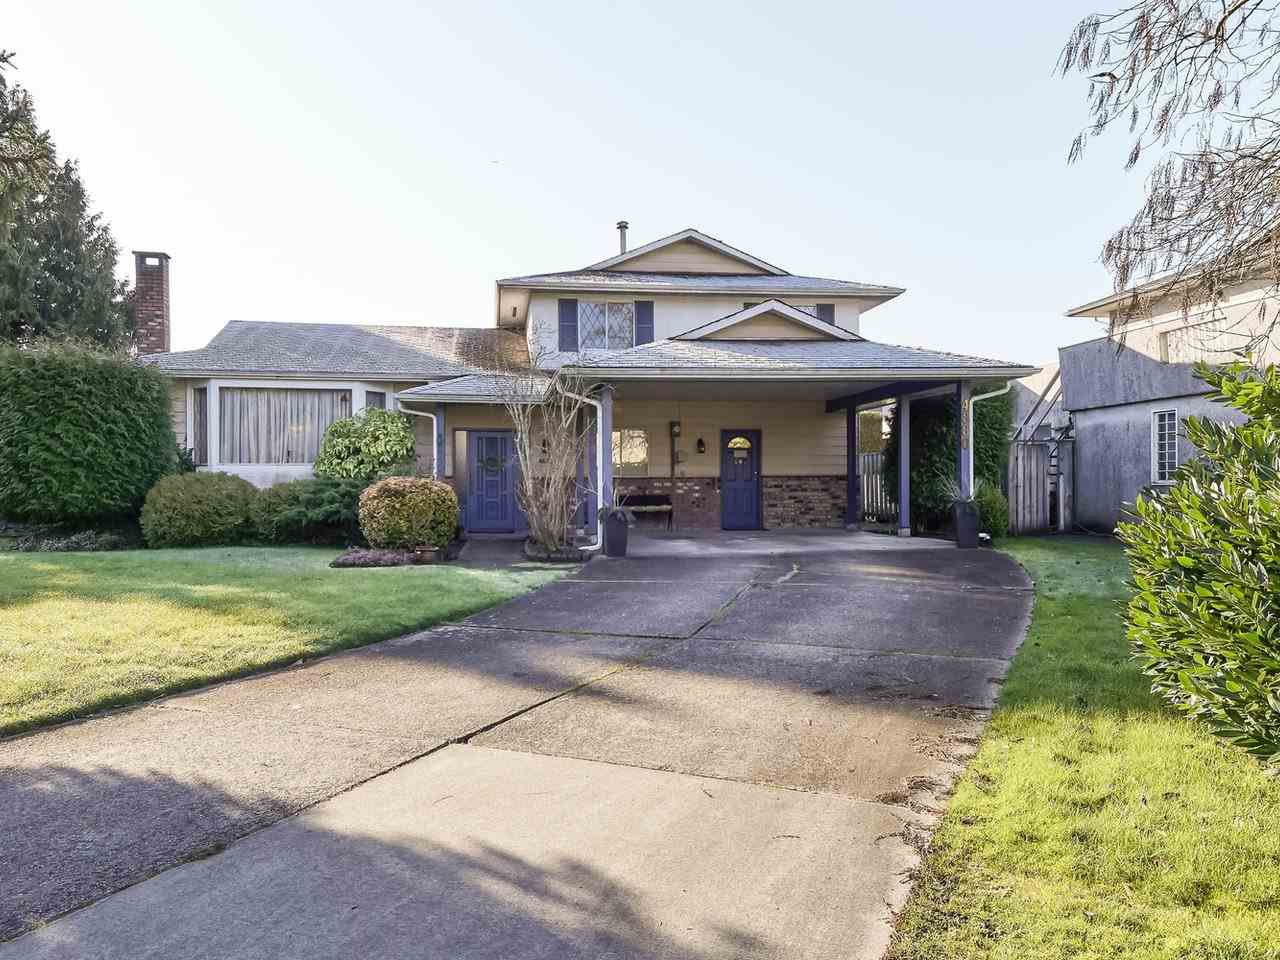 Main Photo: 4880 FORTUNE Avenue in Richmond: Steveston North House for sale : MLS®# R2435063